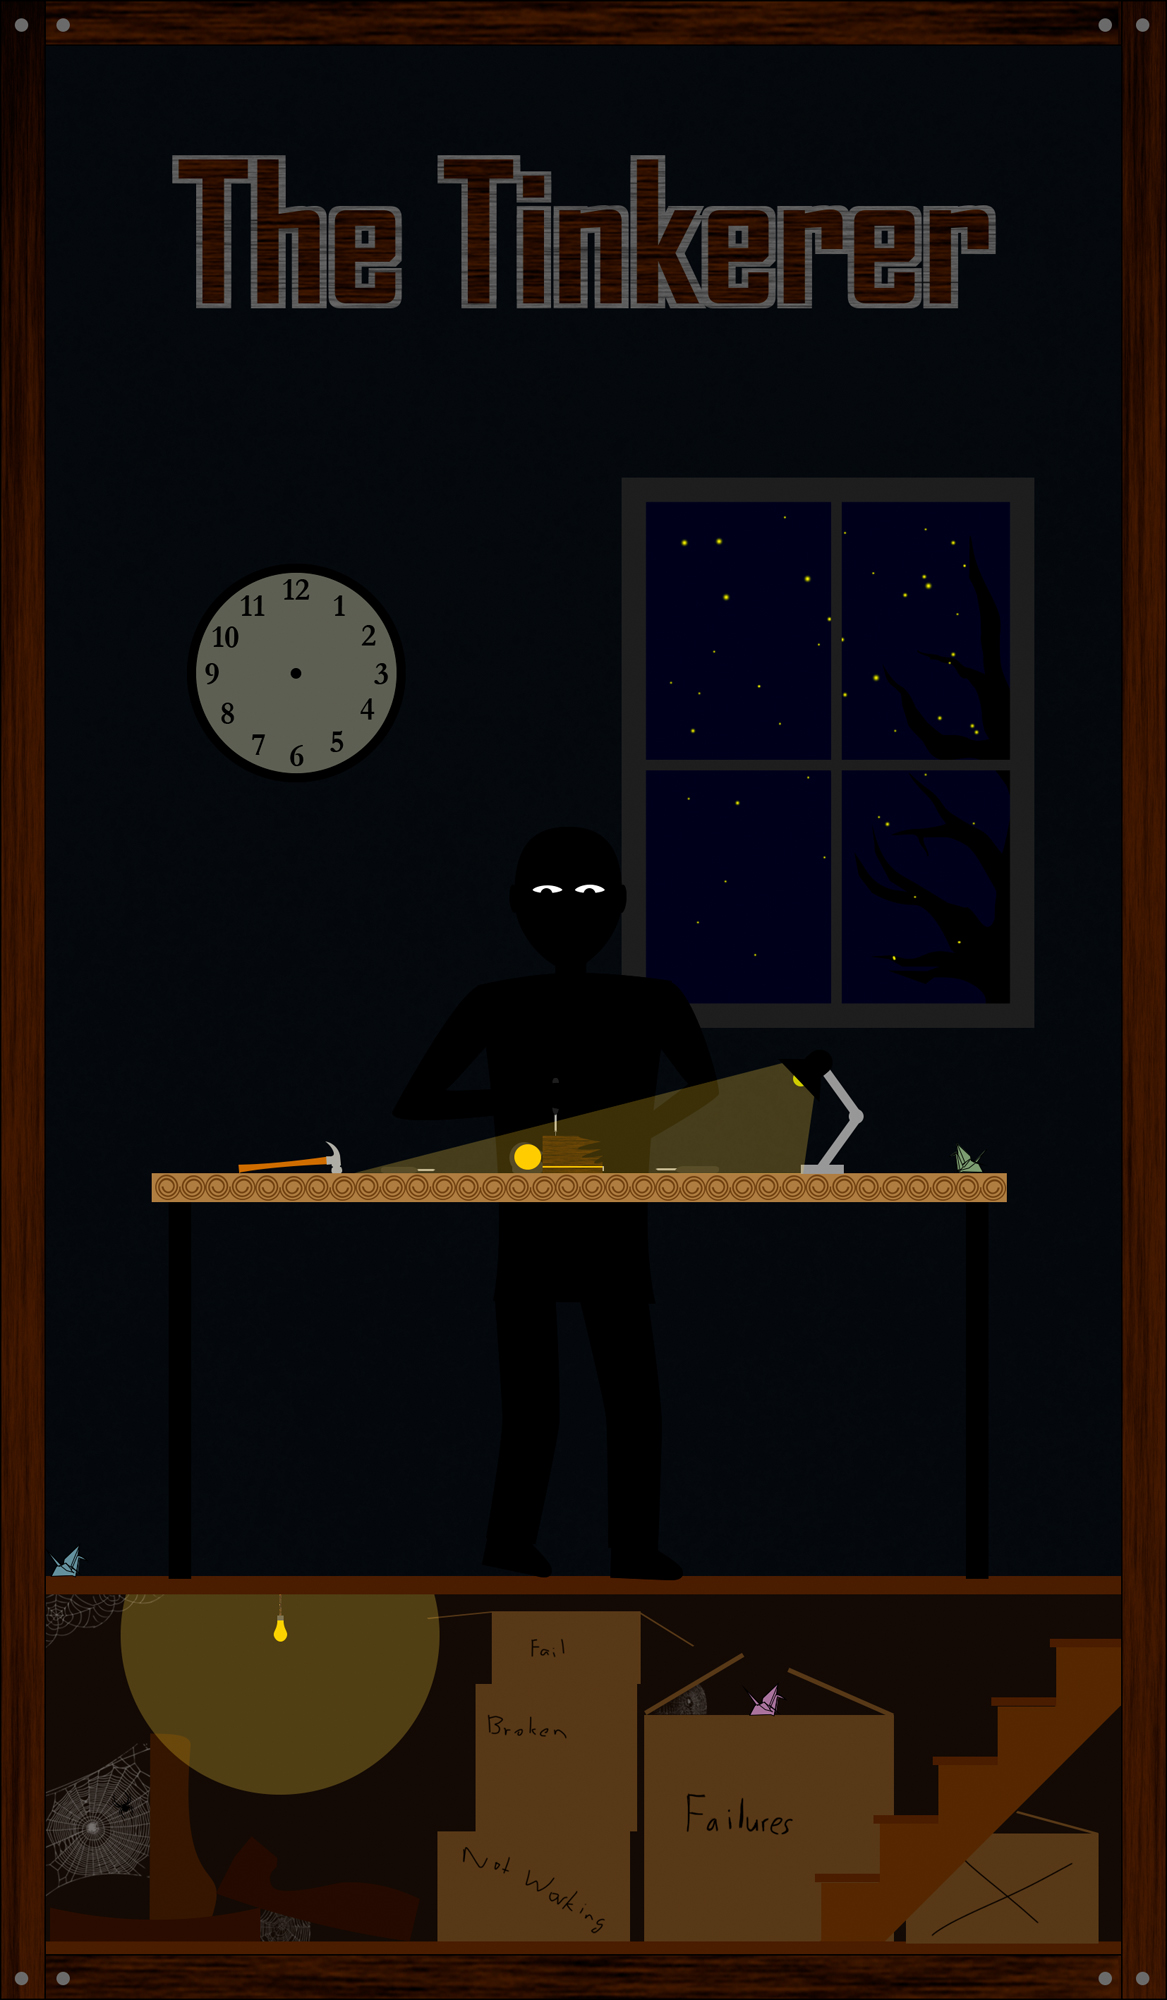 Man works in the dark on a tbale of tools, only lit by the moon outside a window and a flashlight. The bottom of the card shows a basement full of boxes labeld failures, not working, and boredom